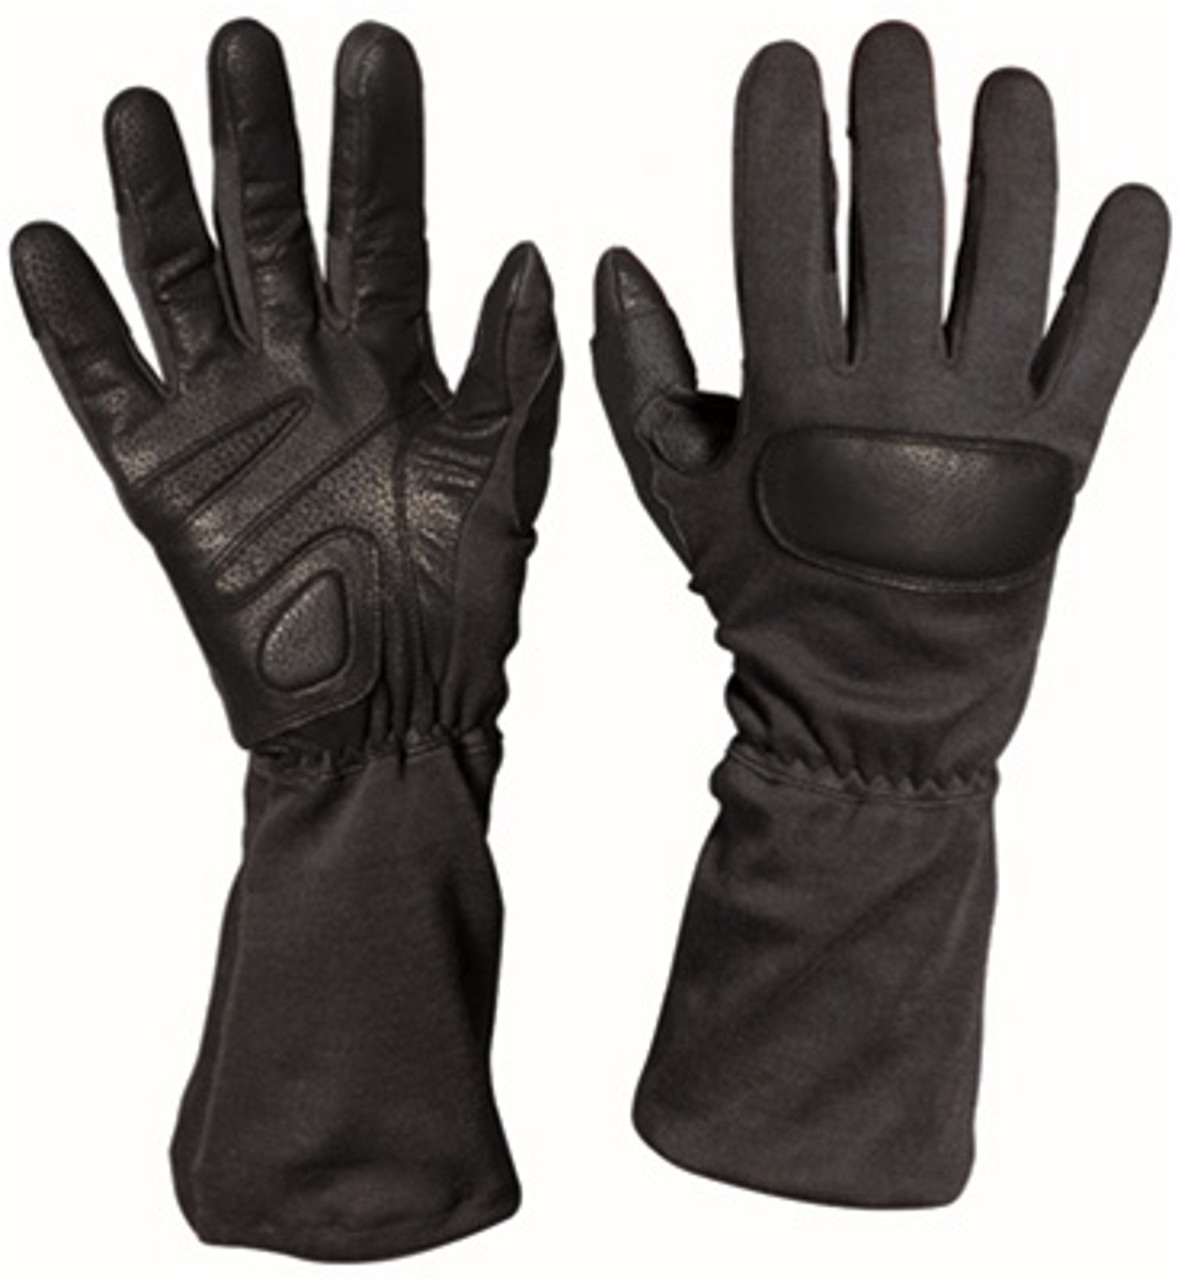 Special Forces Black Tactical Gloves from Hessen Antique